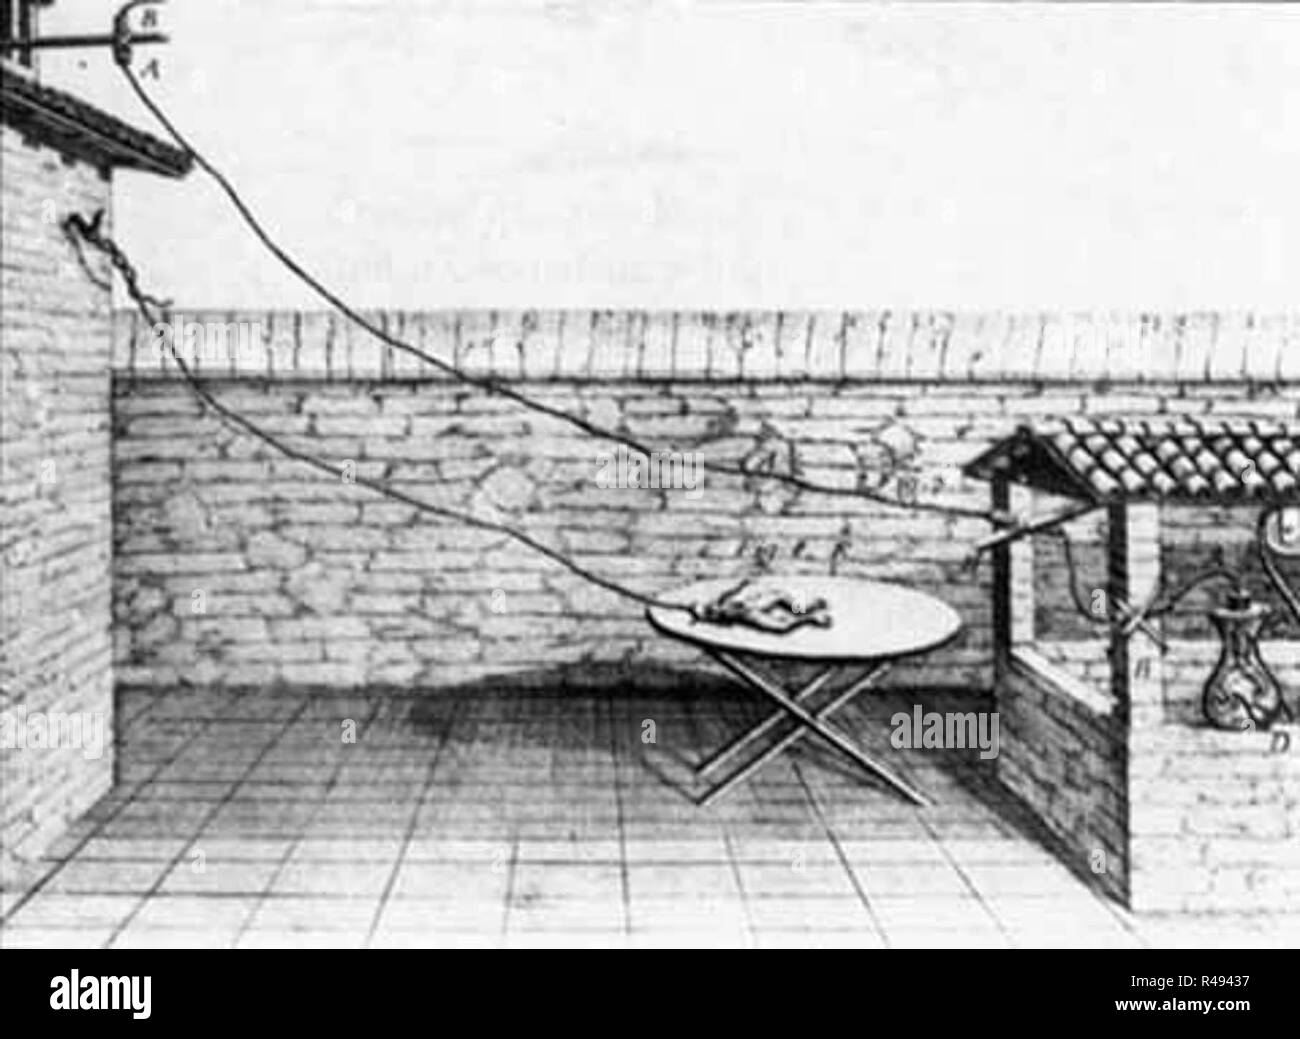 late 1780s diagram of galvanis experiment on frog legs R49437 frog legs black and white stock photos & images alamy